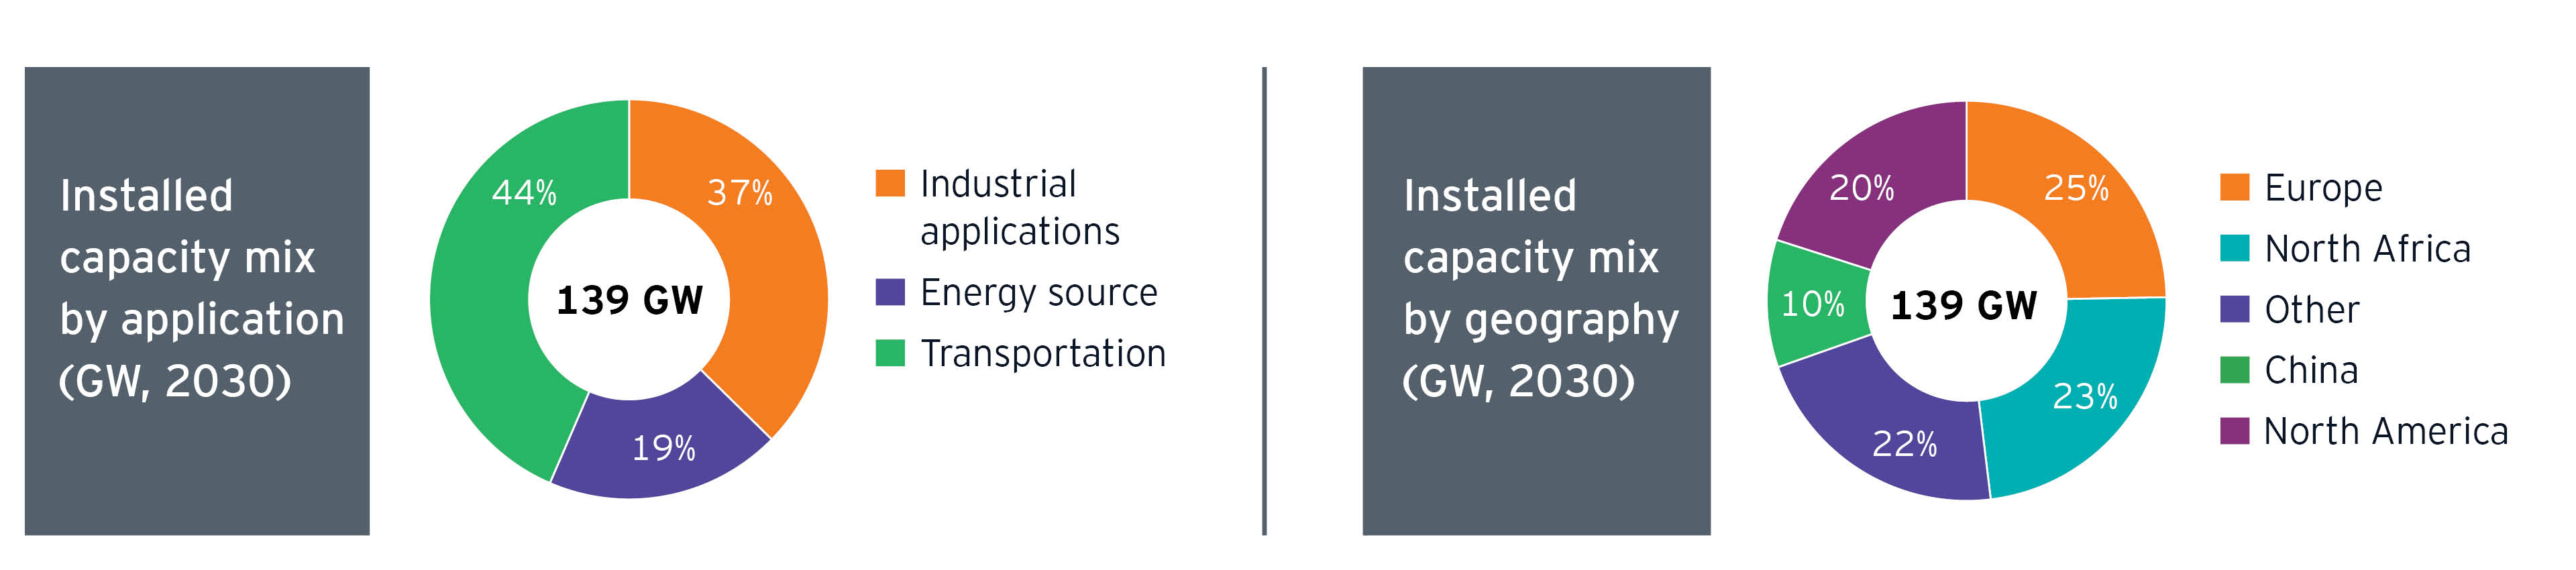 Figure 6: Hydrogen estimated installed capacity 2030 by application and geography